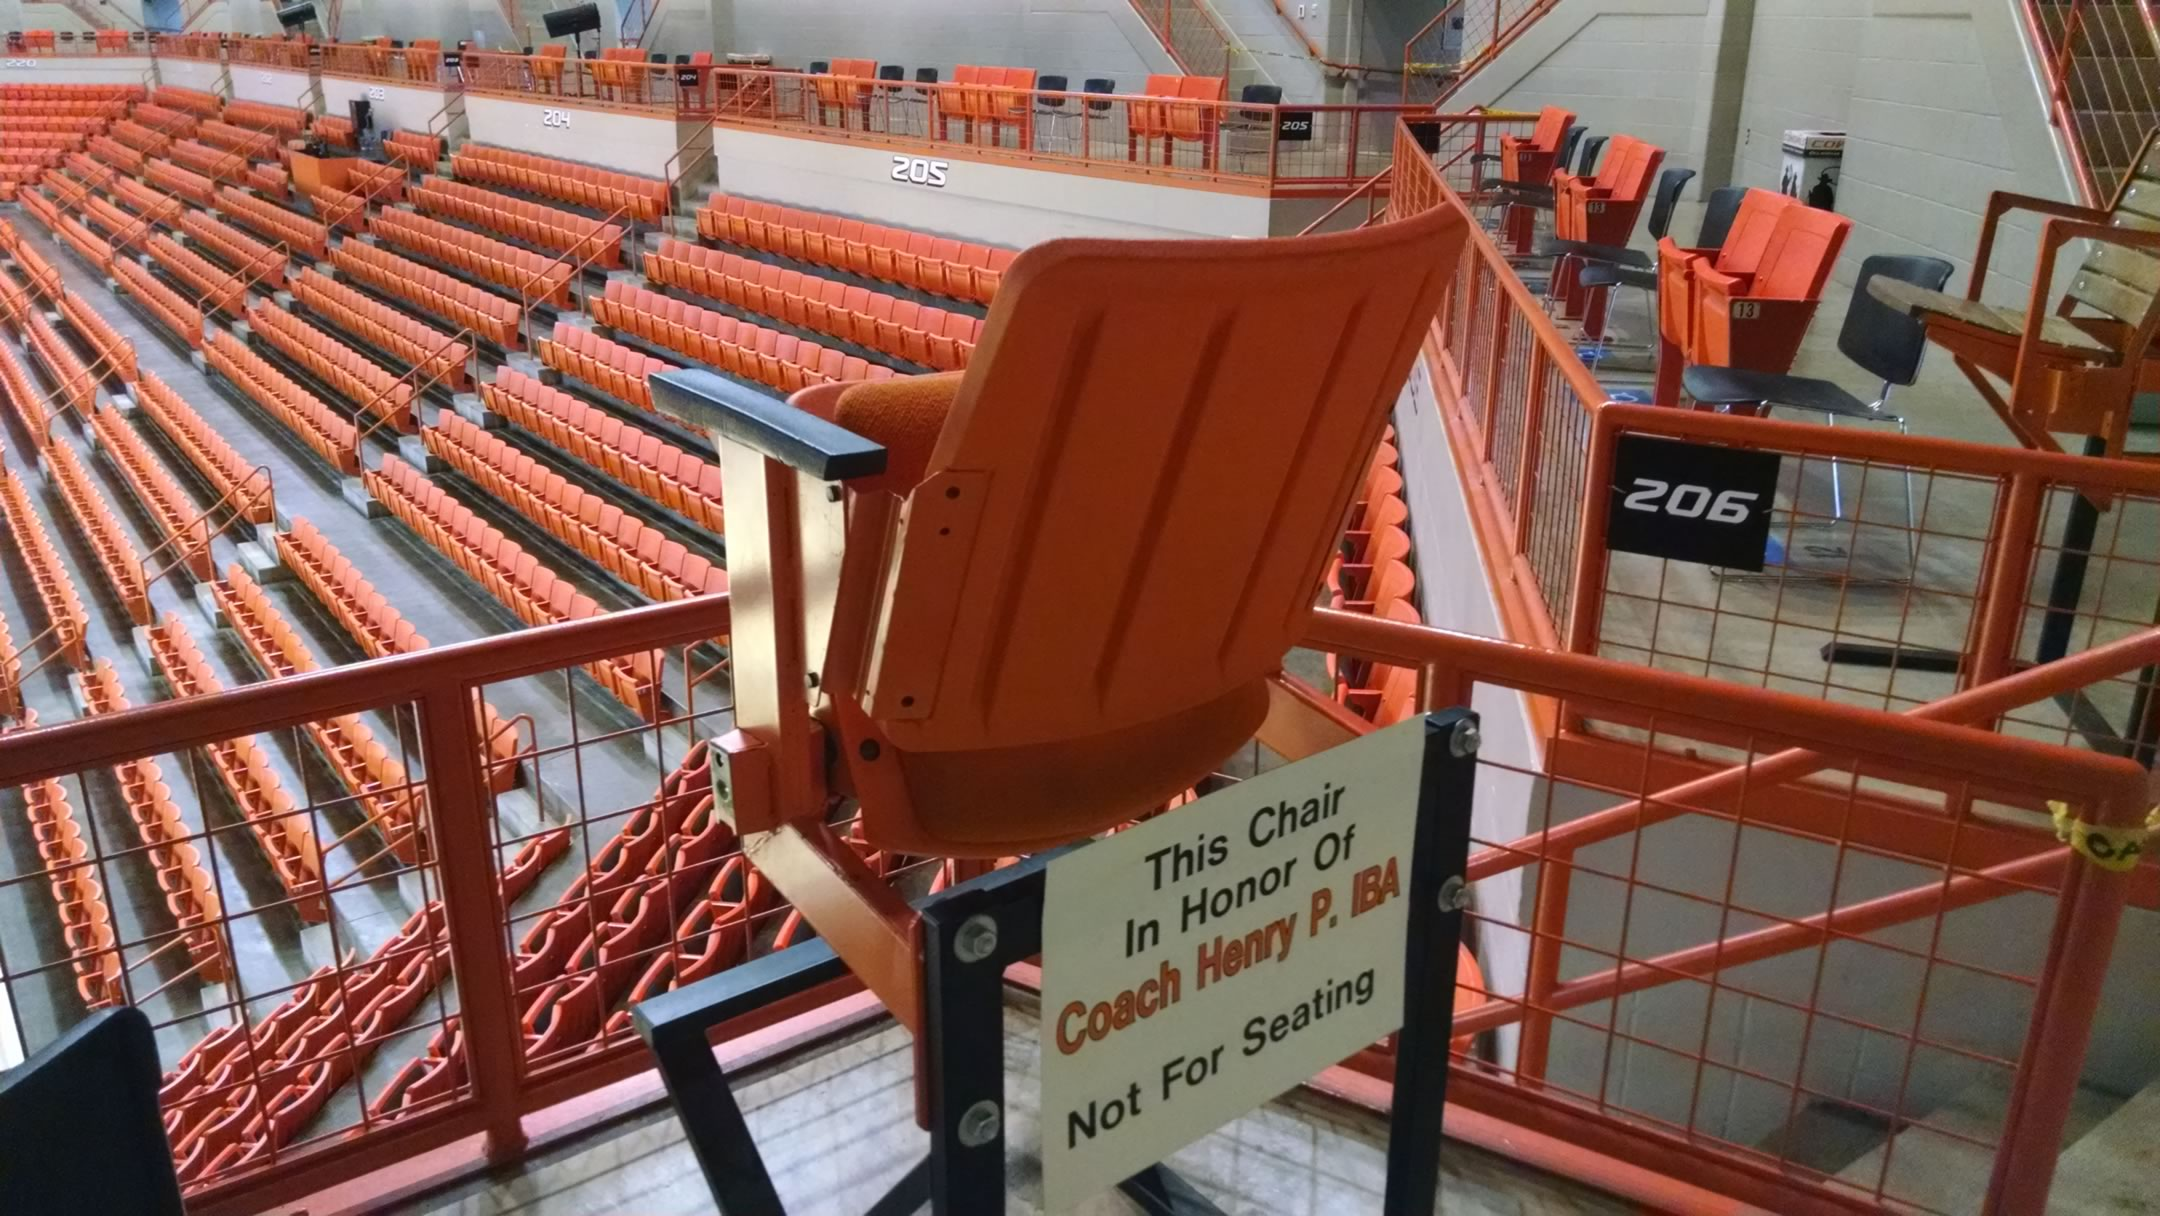 Gallagher Iba Arena Oklahoma St Seating Guide